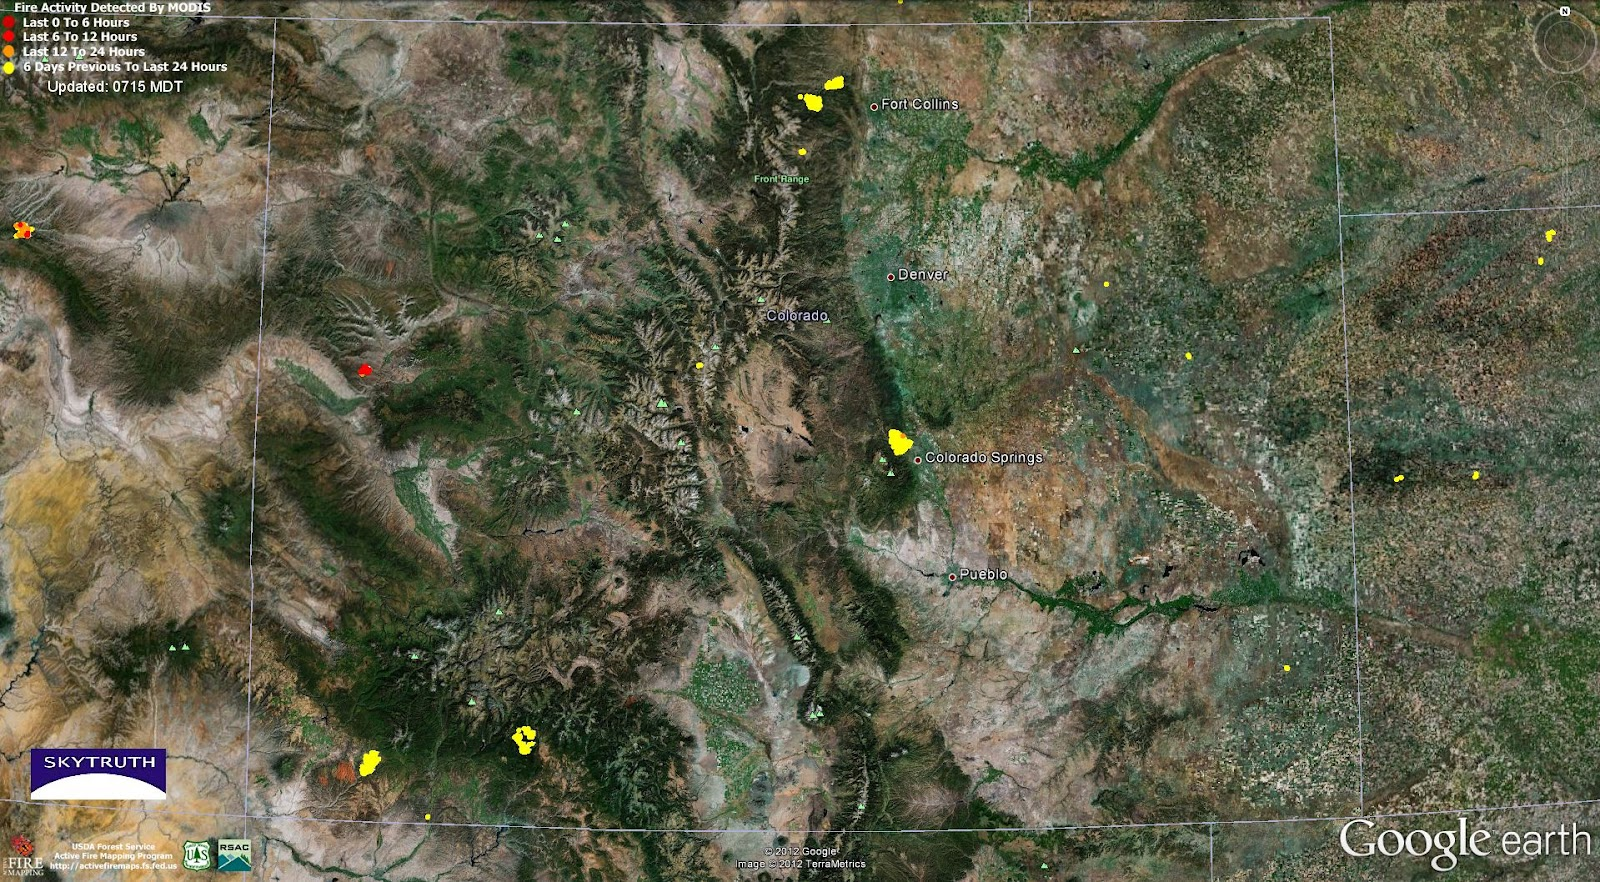 Wildfires and Gas Wells – Pine Ridge Fire, Colorado – SkyTruth